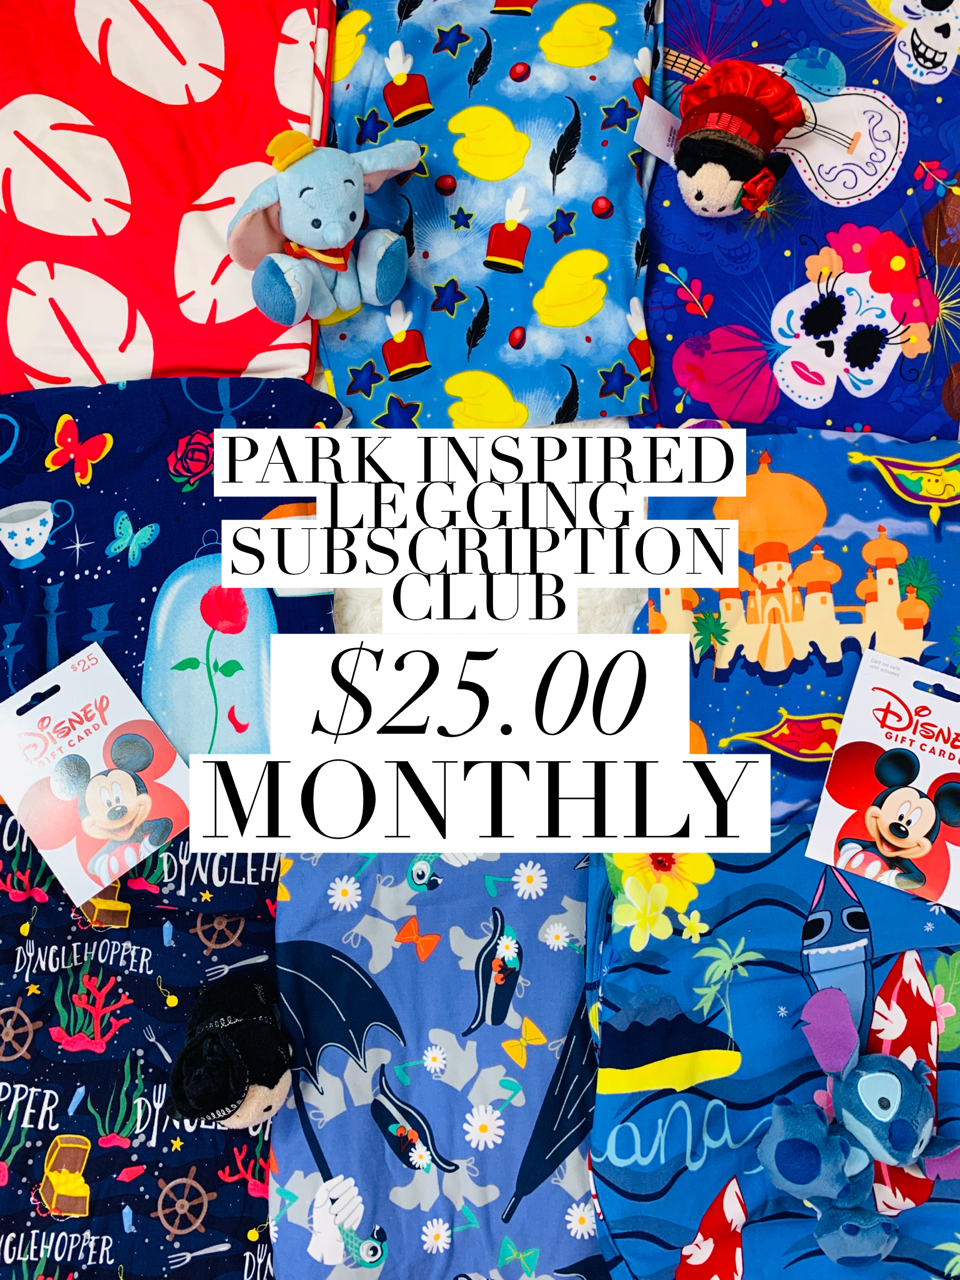 Park Inspired Leggings Subscription Club - Monthly Subscription